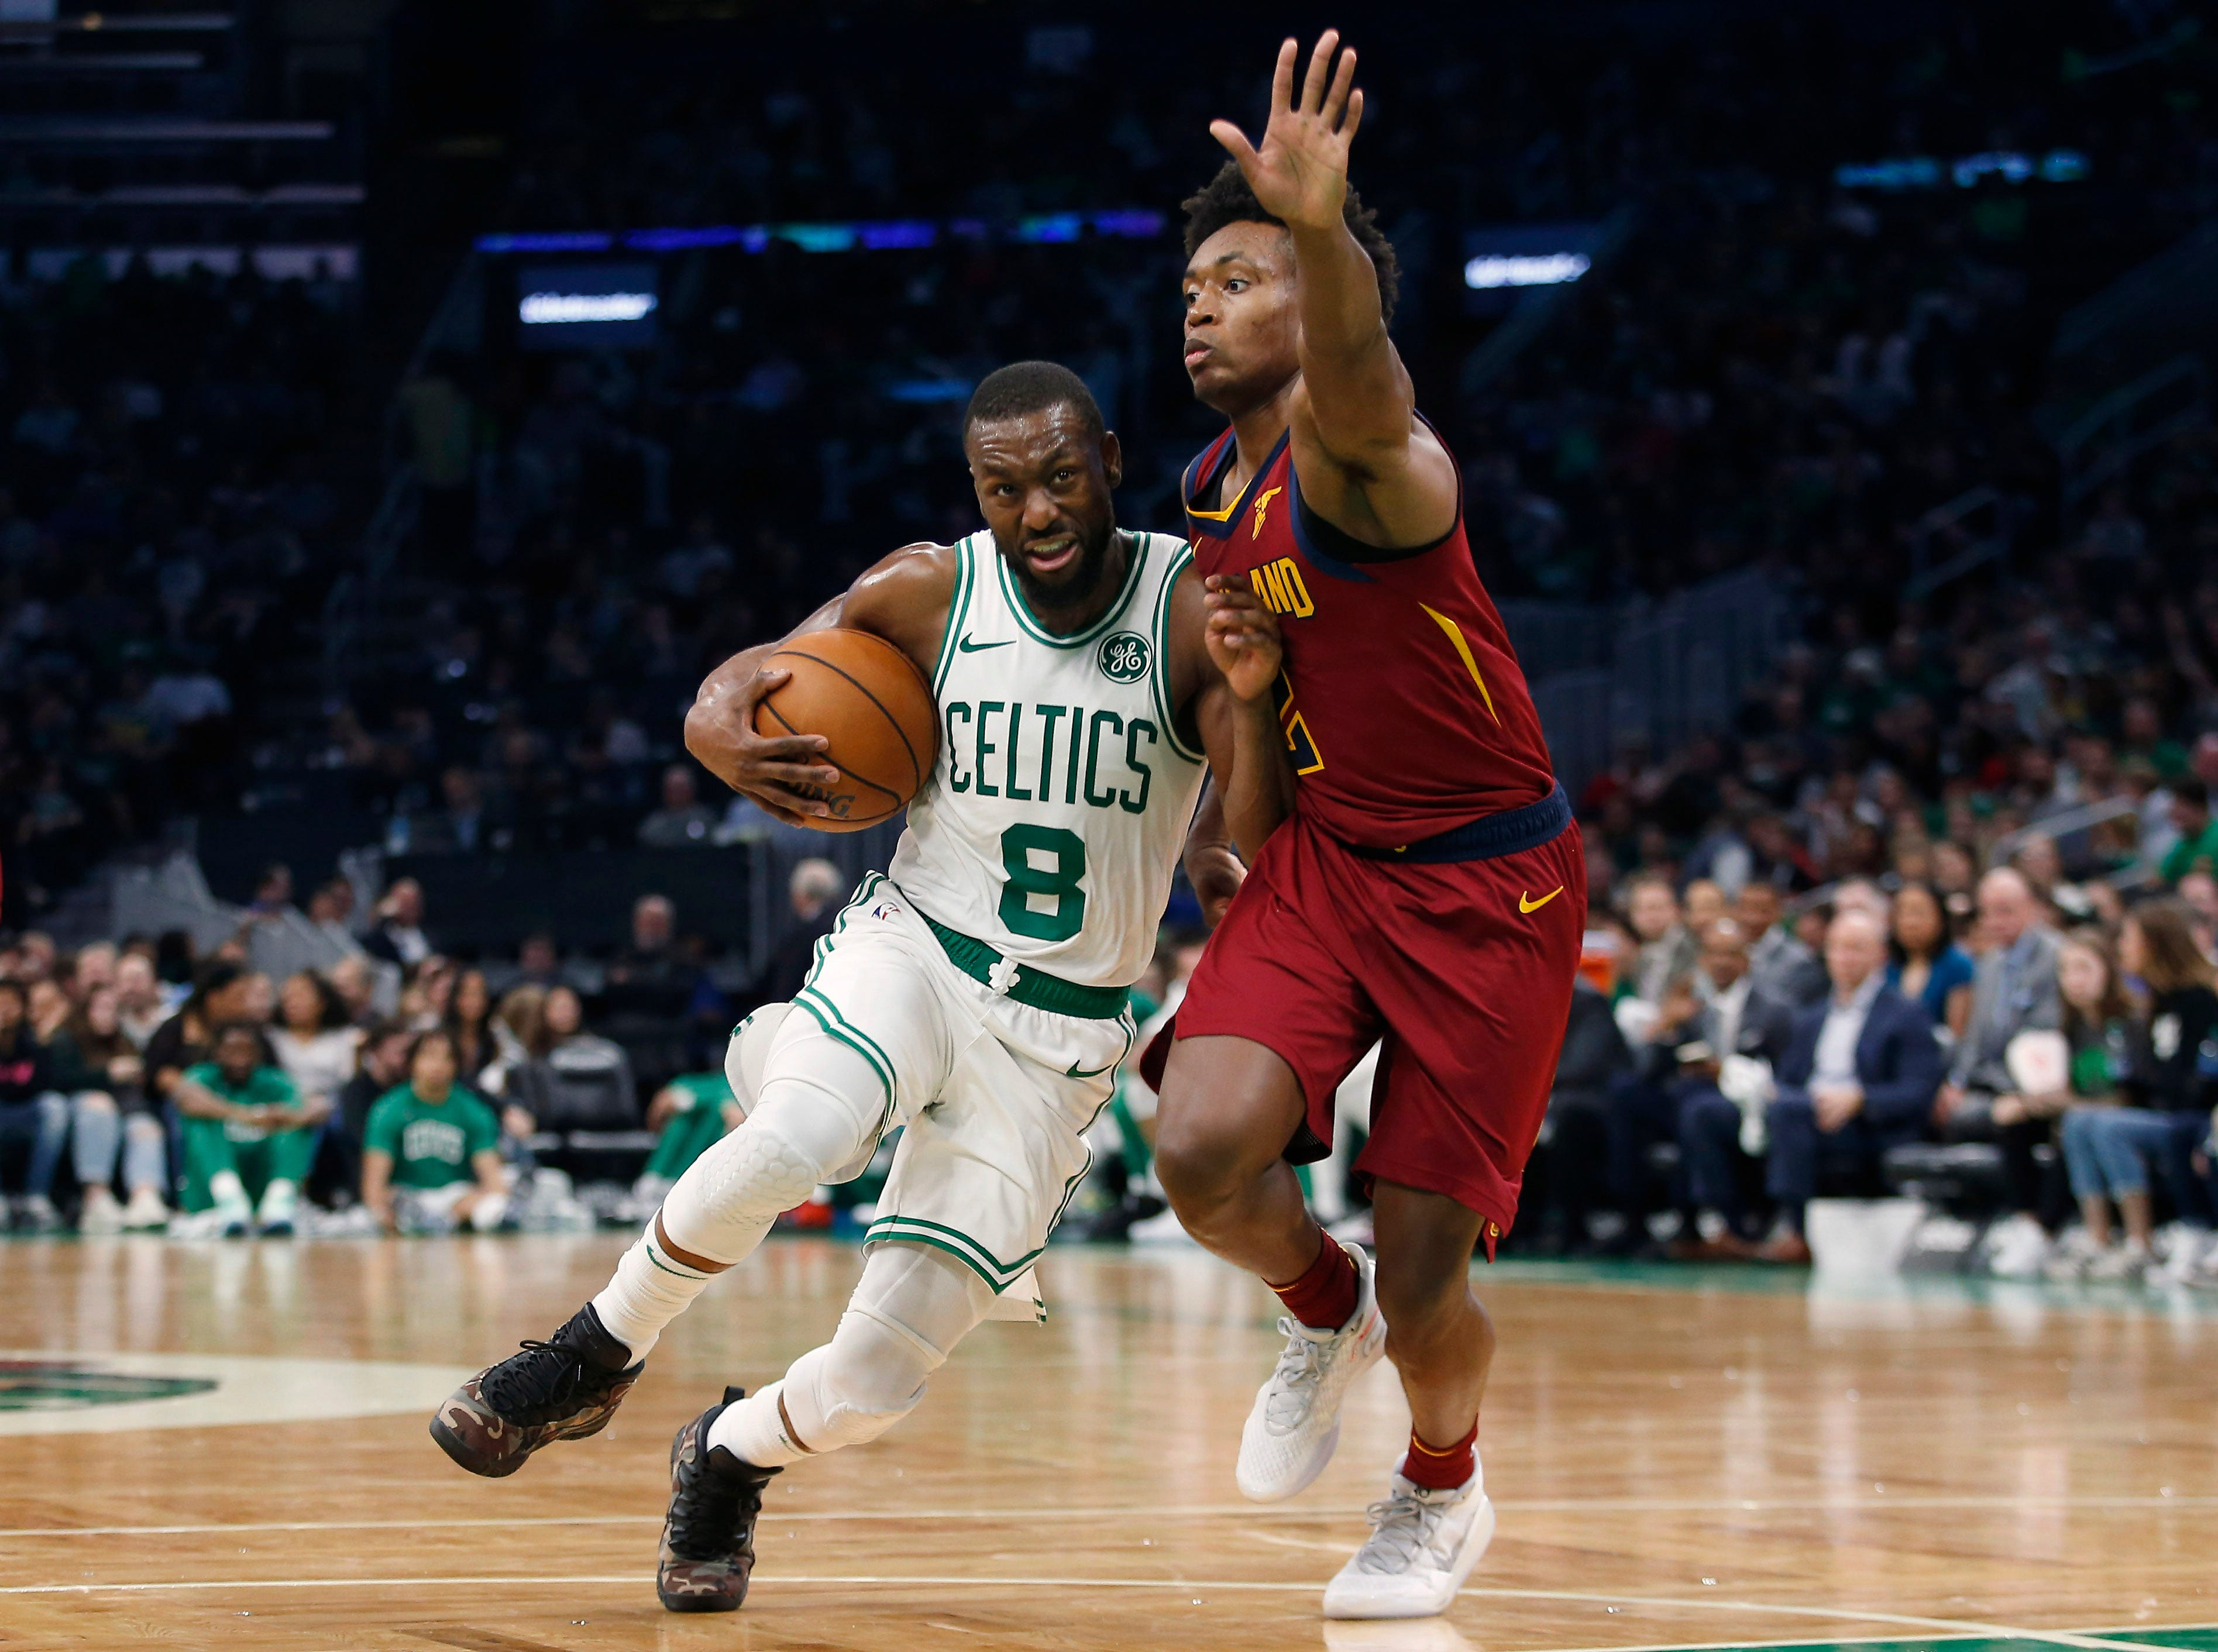 Complete Nba National Tv Schedule For The 2019 20 Season